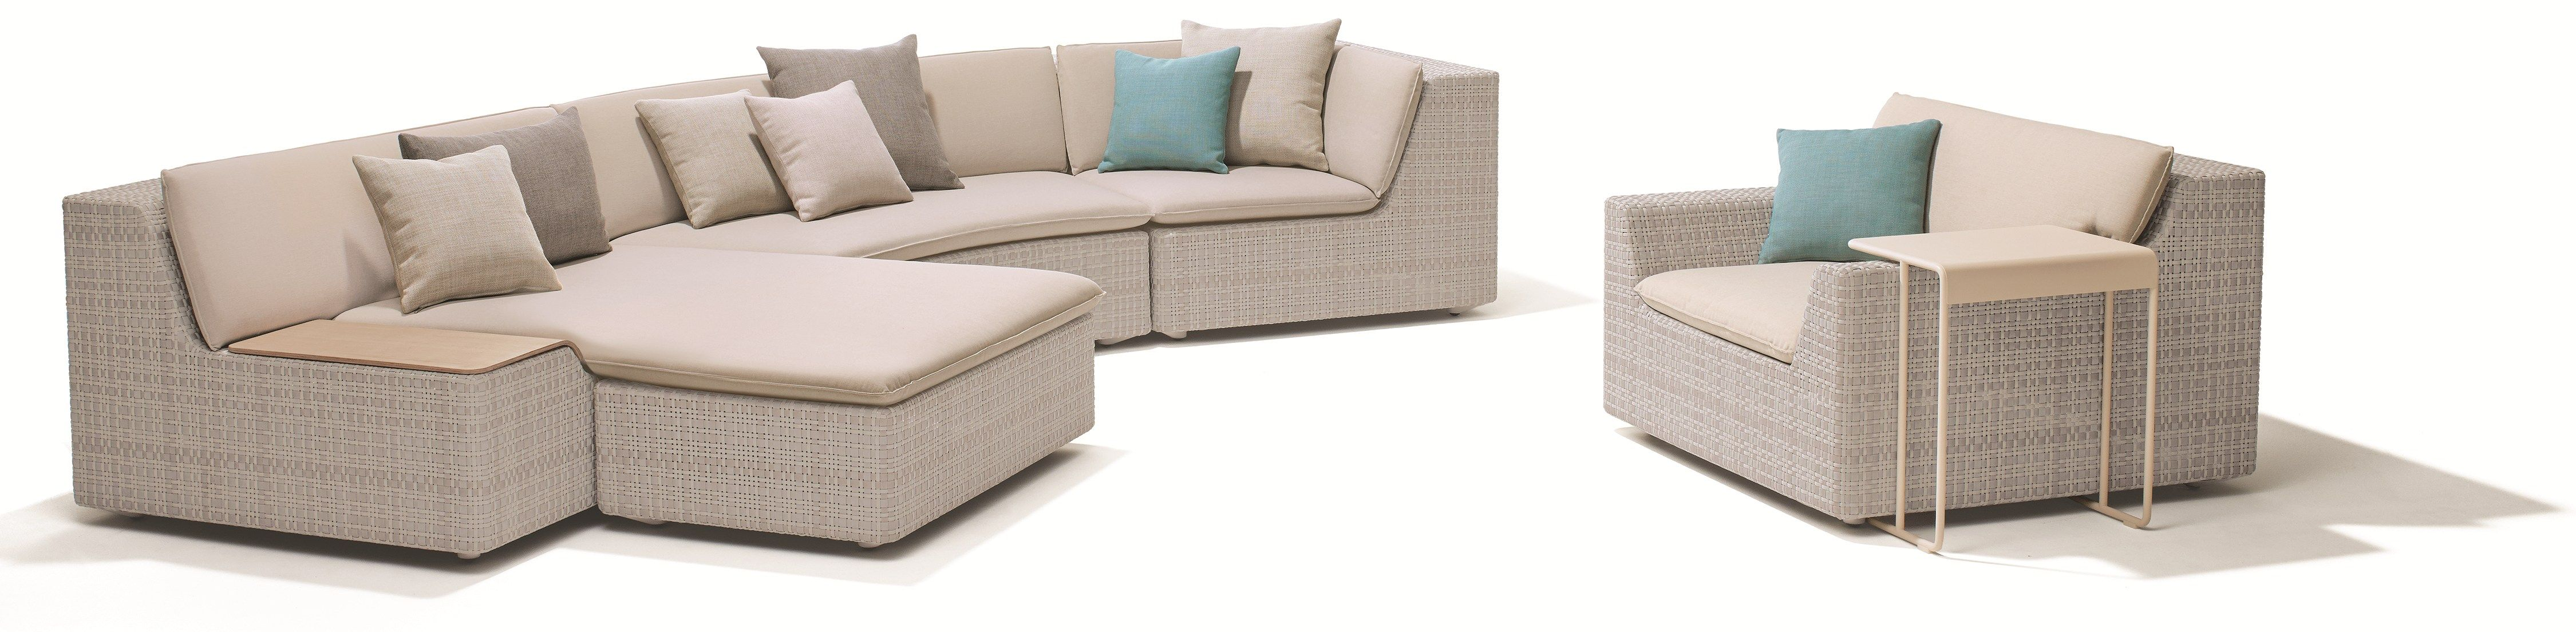 LOU Sectional sofa Lou Collection by Dedon design Toan Nguyen